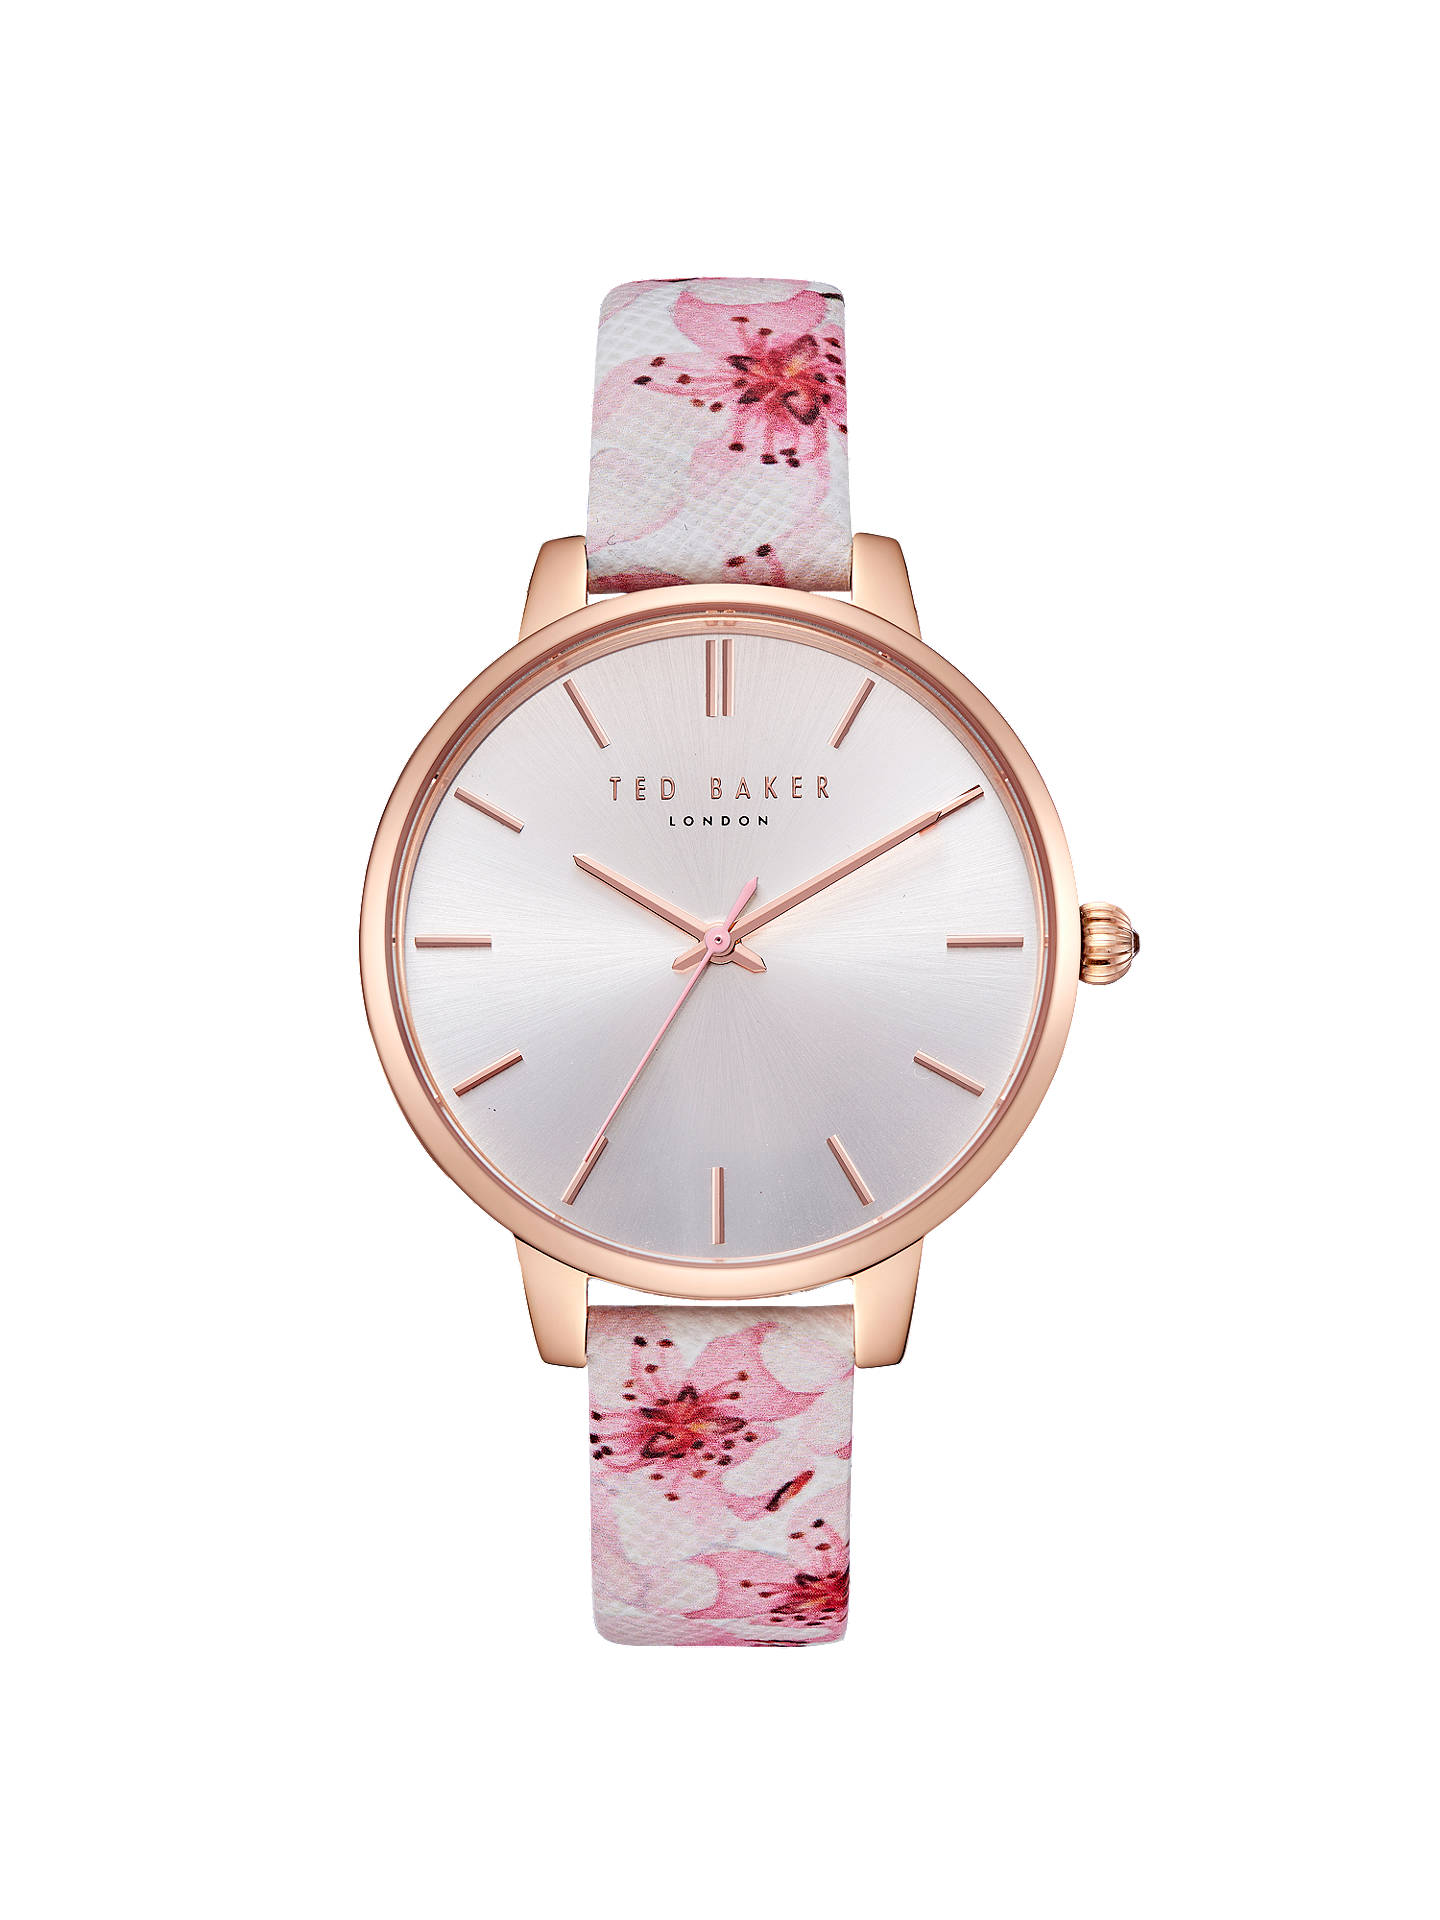 d24bb762d Ted Baker Women s Kate Floral Leather Strap Watch at John Lewis ...